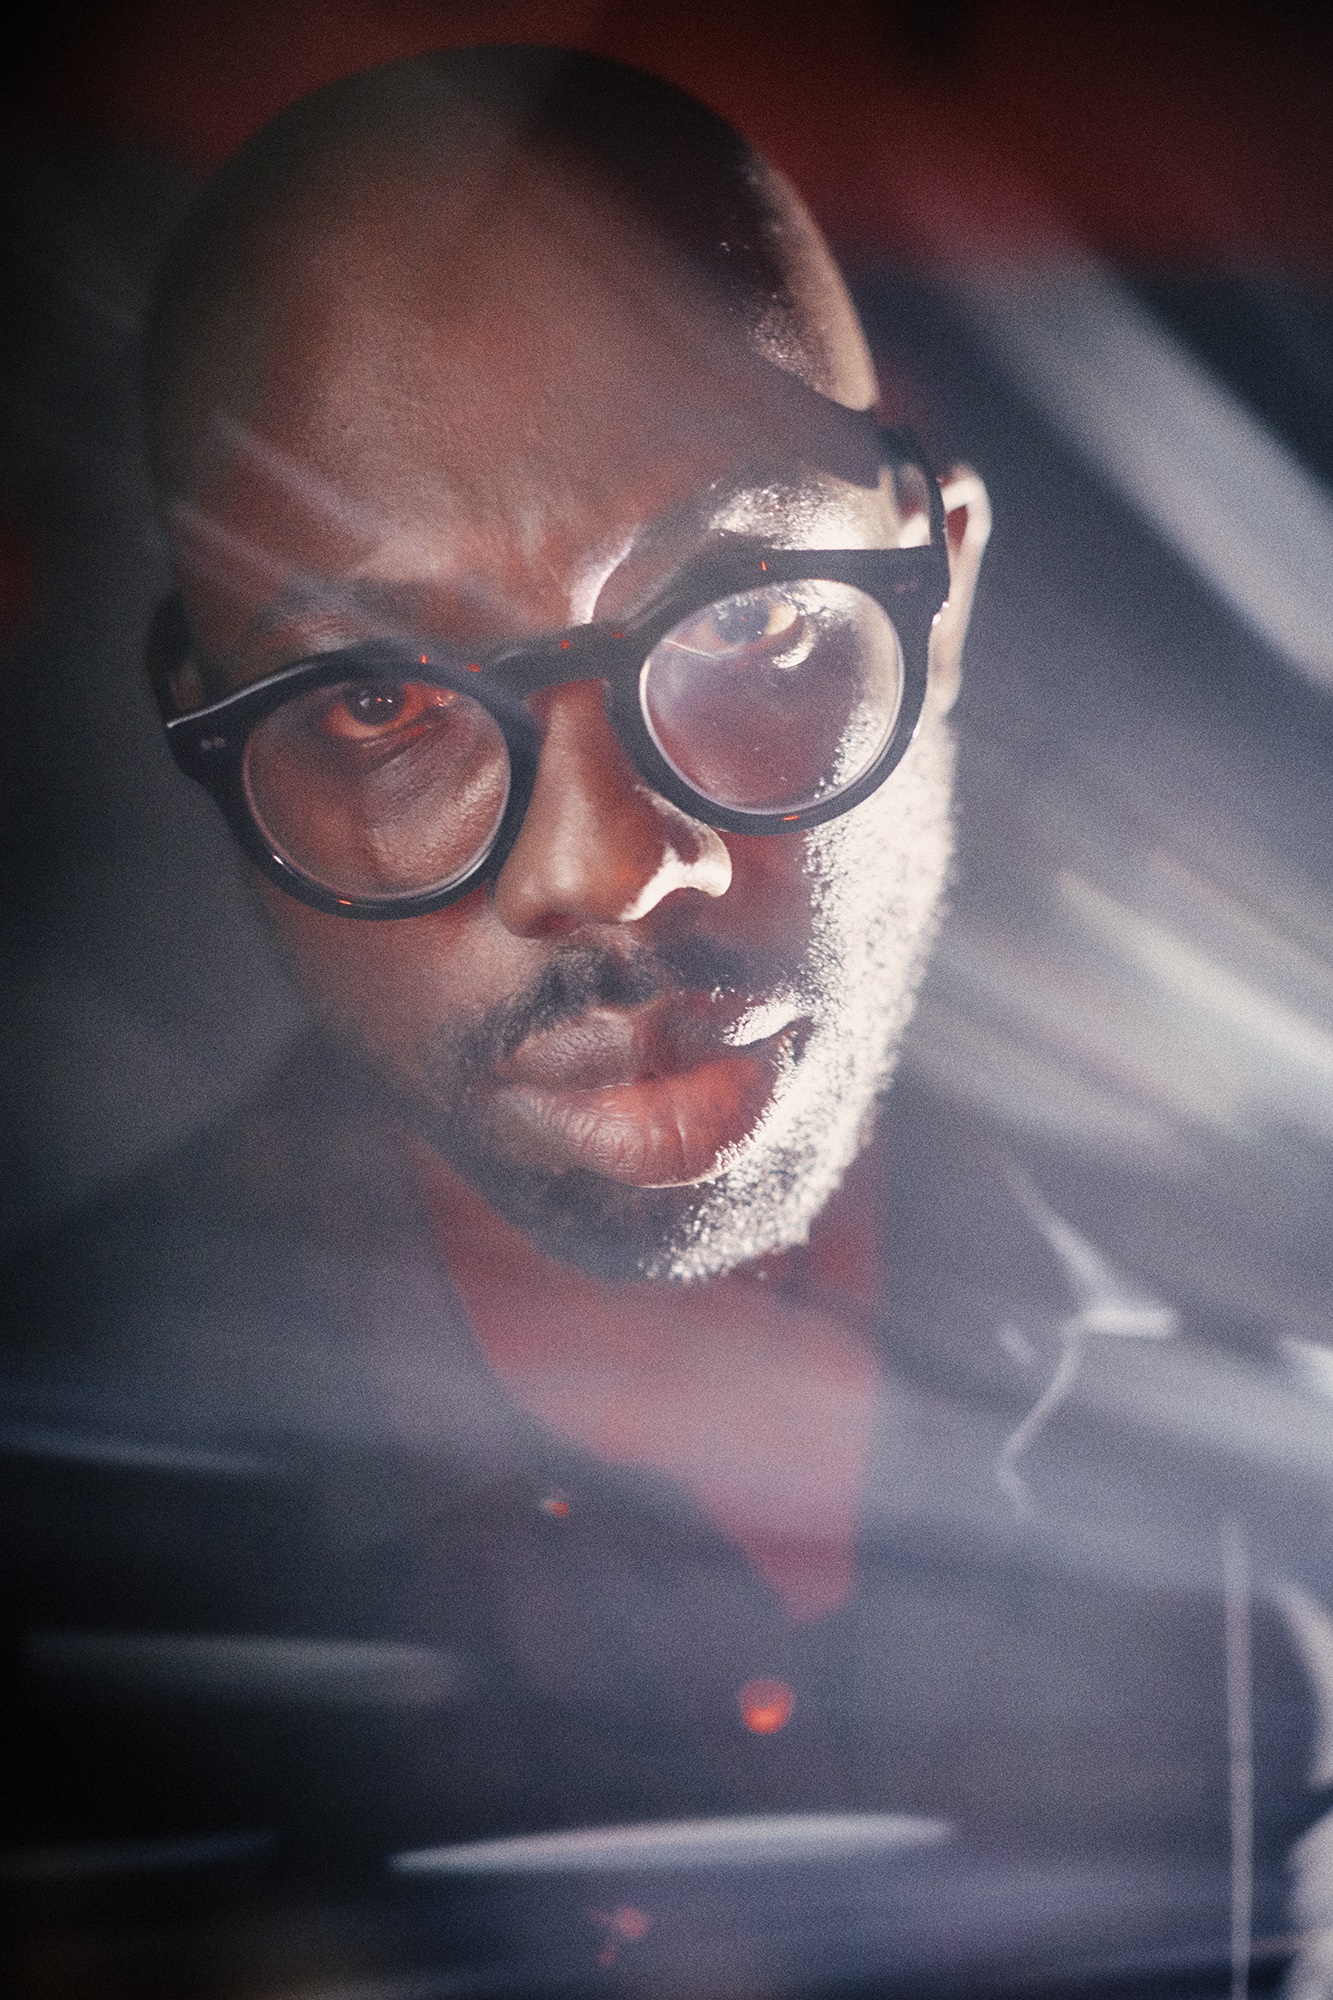 GHOSTPOET TO SUPPORT BIFFY CLYRO  AT SCARBOROUGH OPEN AIR THEATRE